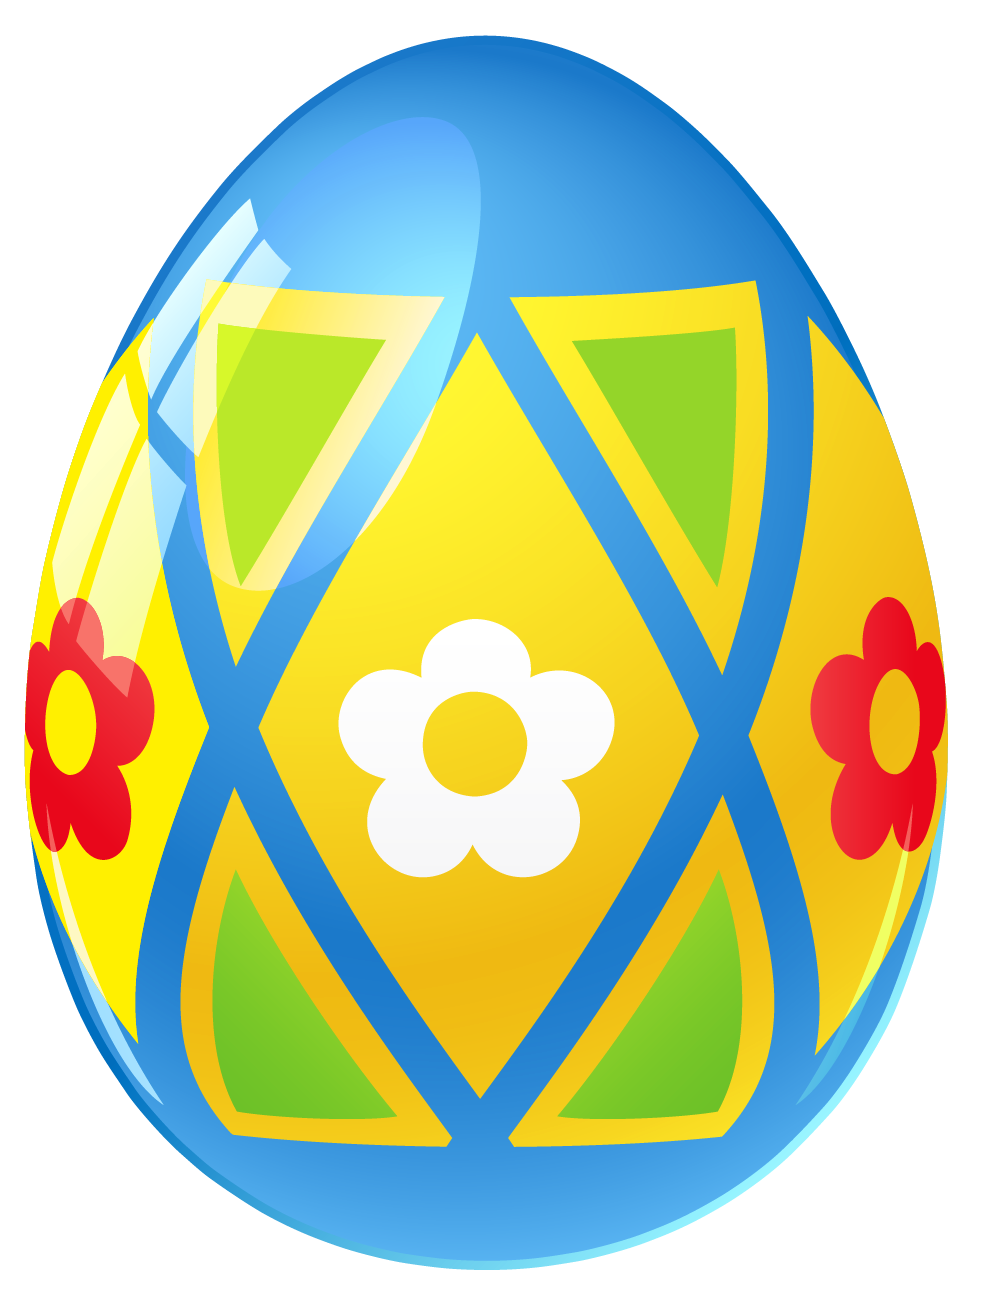 With flowers png picture. Blue clipart easter egg